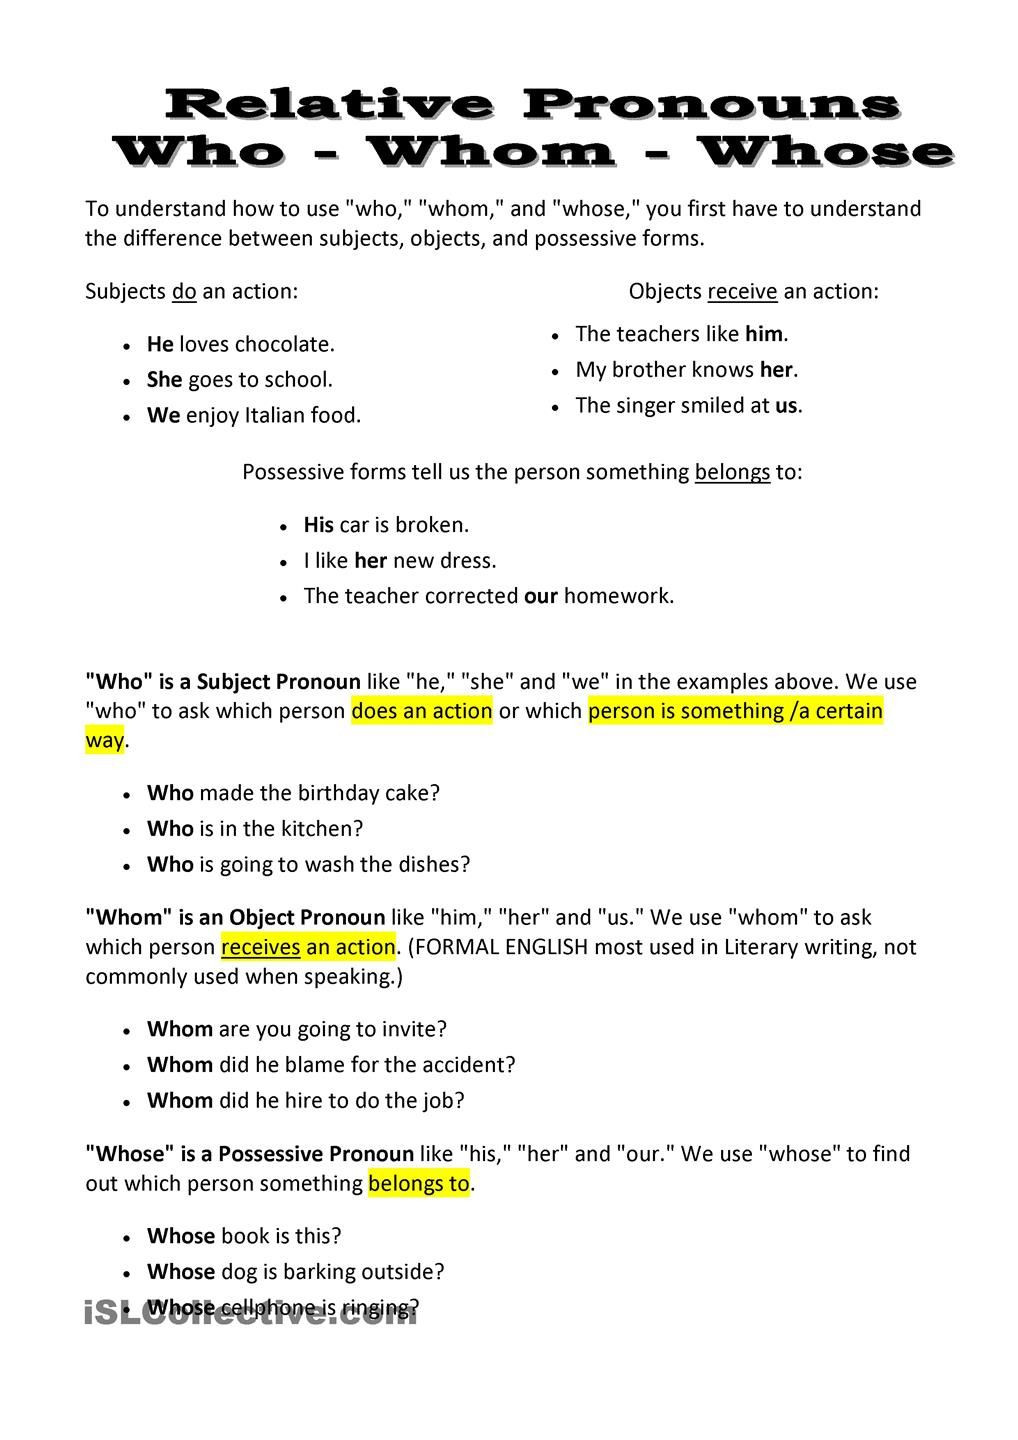 Relative Pronouns Worksheet 4th Grade Relative Pronouns who whom whose